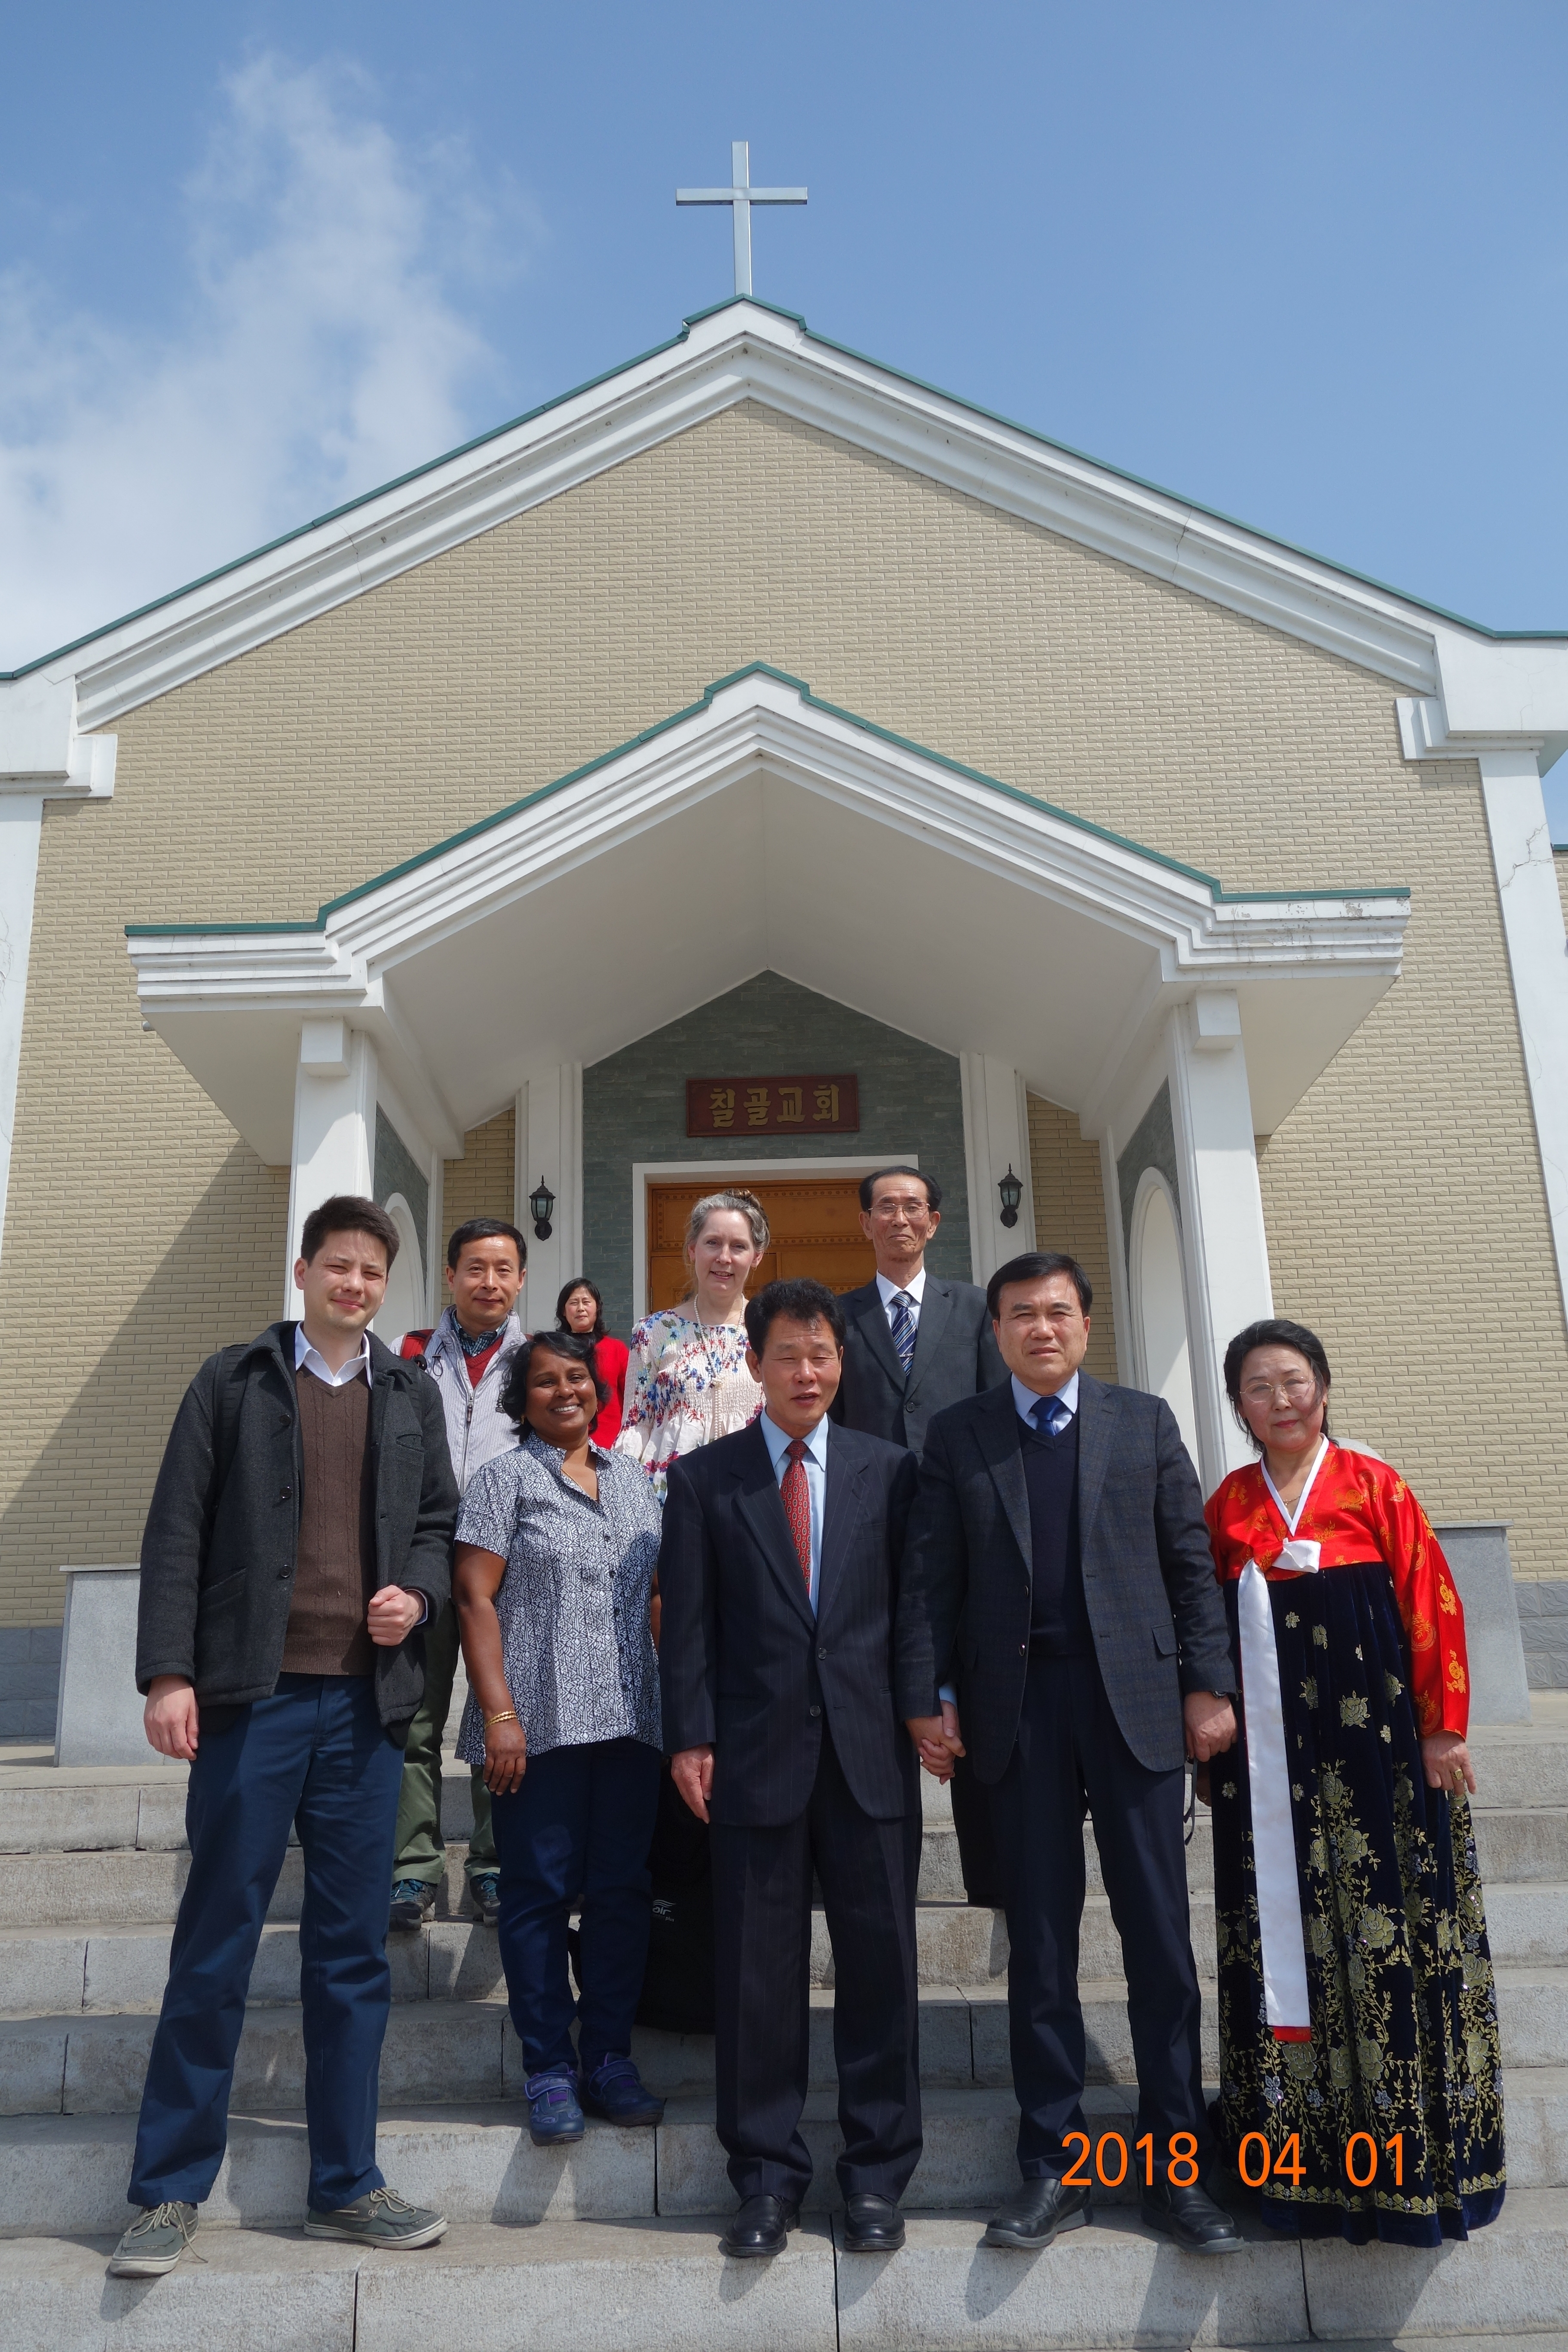 On Easter Sunday at Chigol Church in Pyongyang.